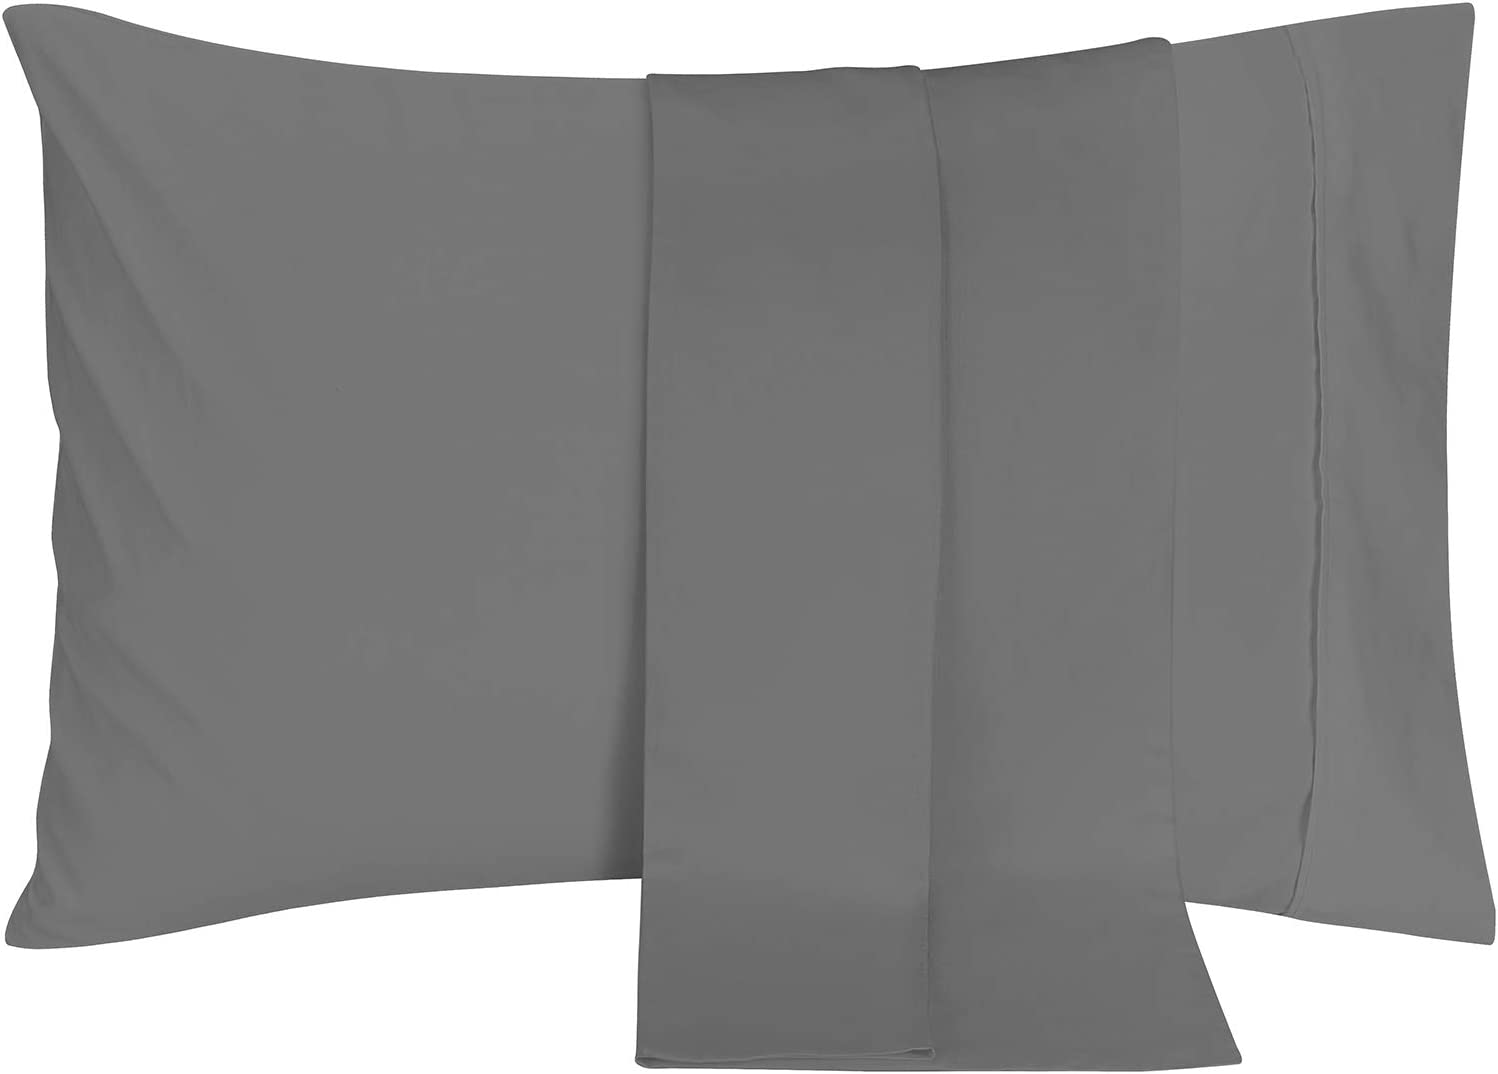 Utopia Bedding Brushed Microfiber Pillowcases – 20 by 40 inches Pillow Covers (Pack of 2, King, Grey)